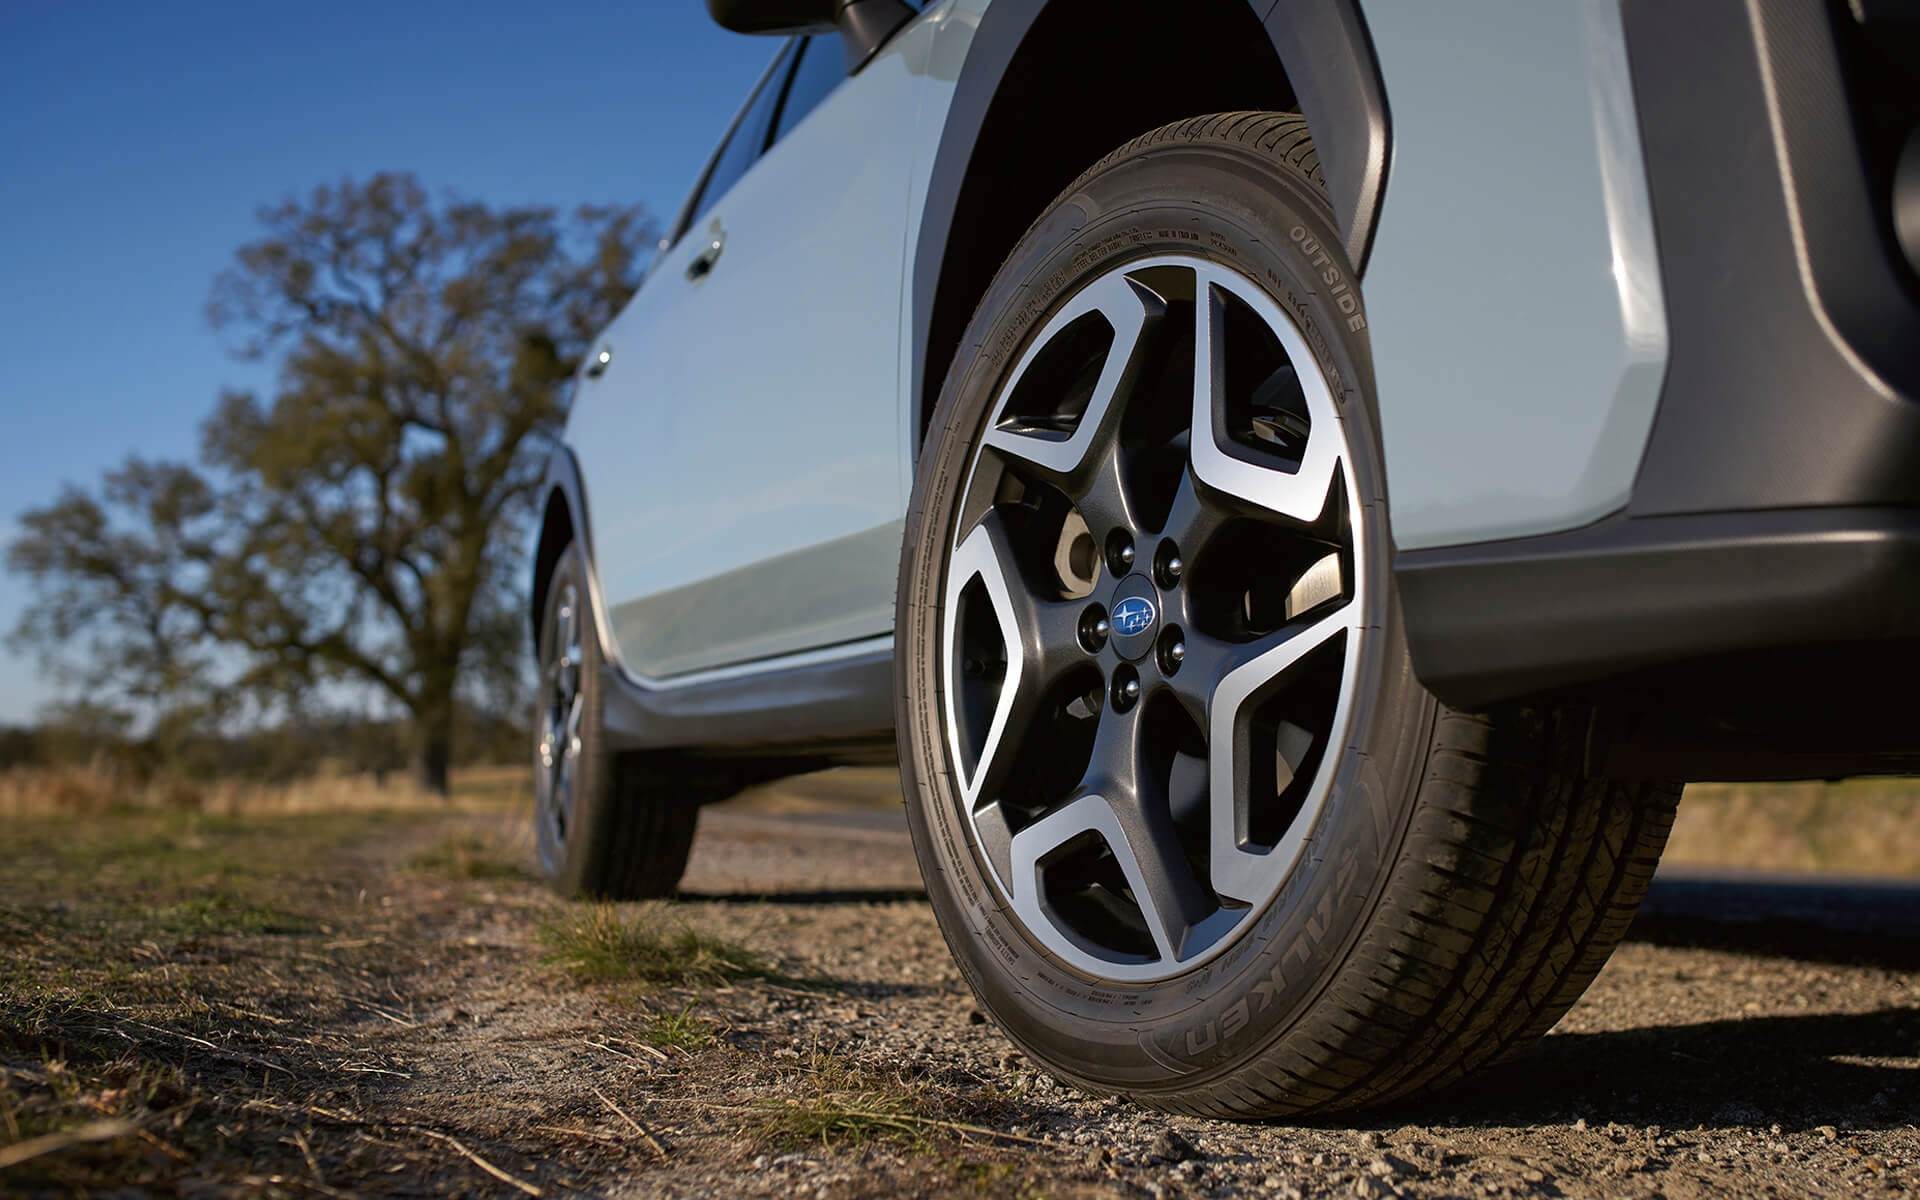 Subaru Crosstrek: Available 18-inch alloy wheels